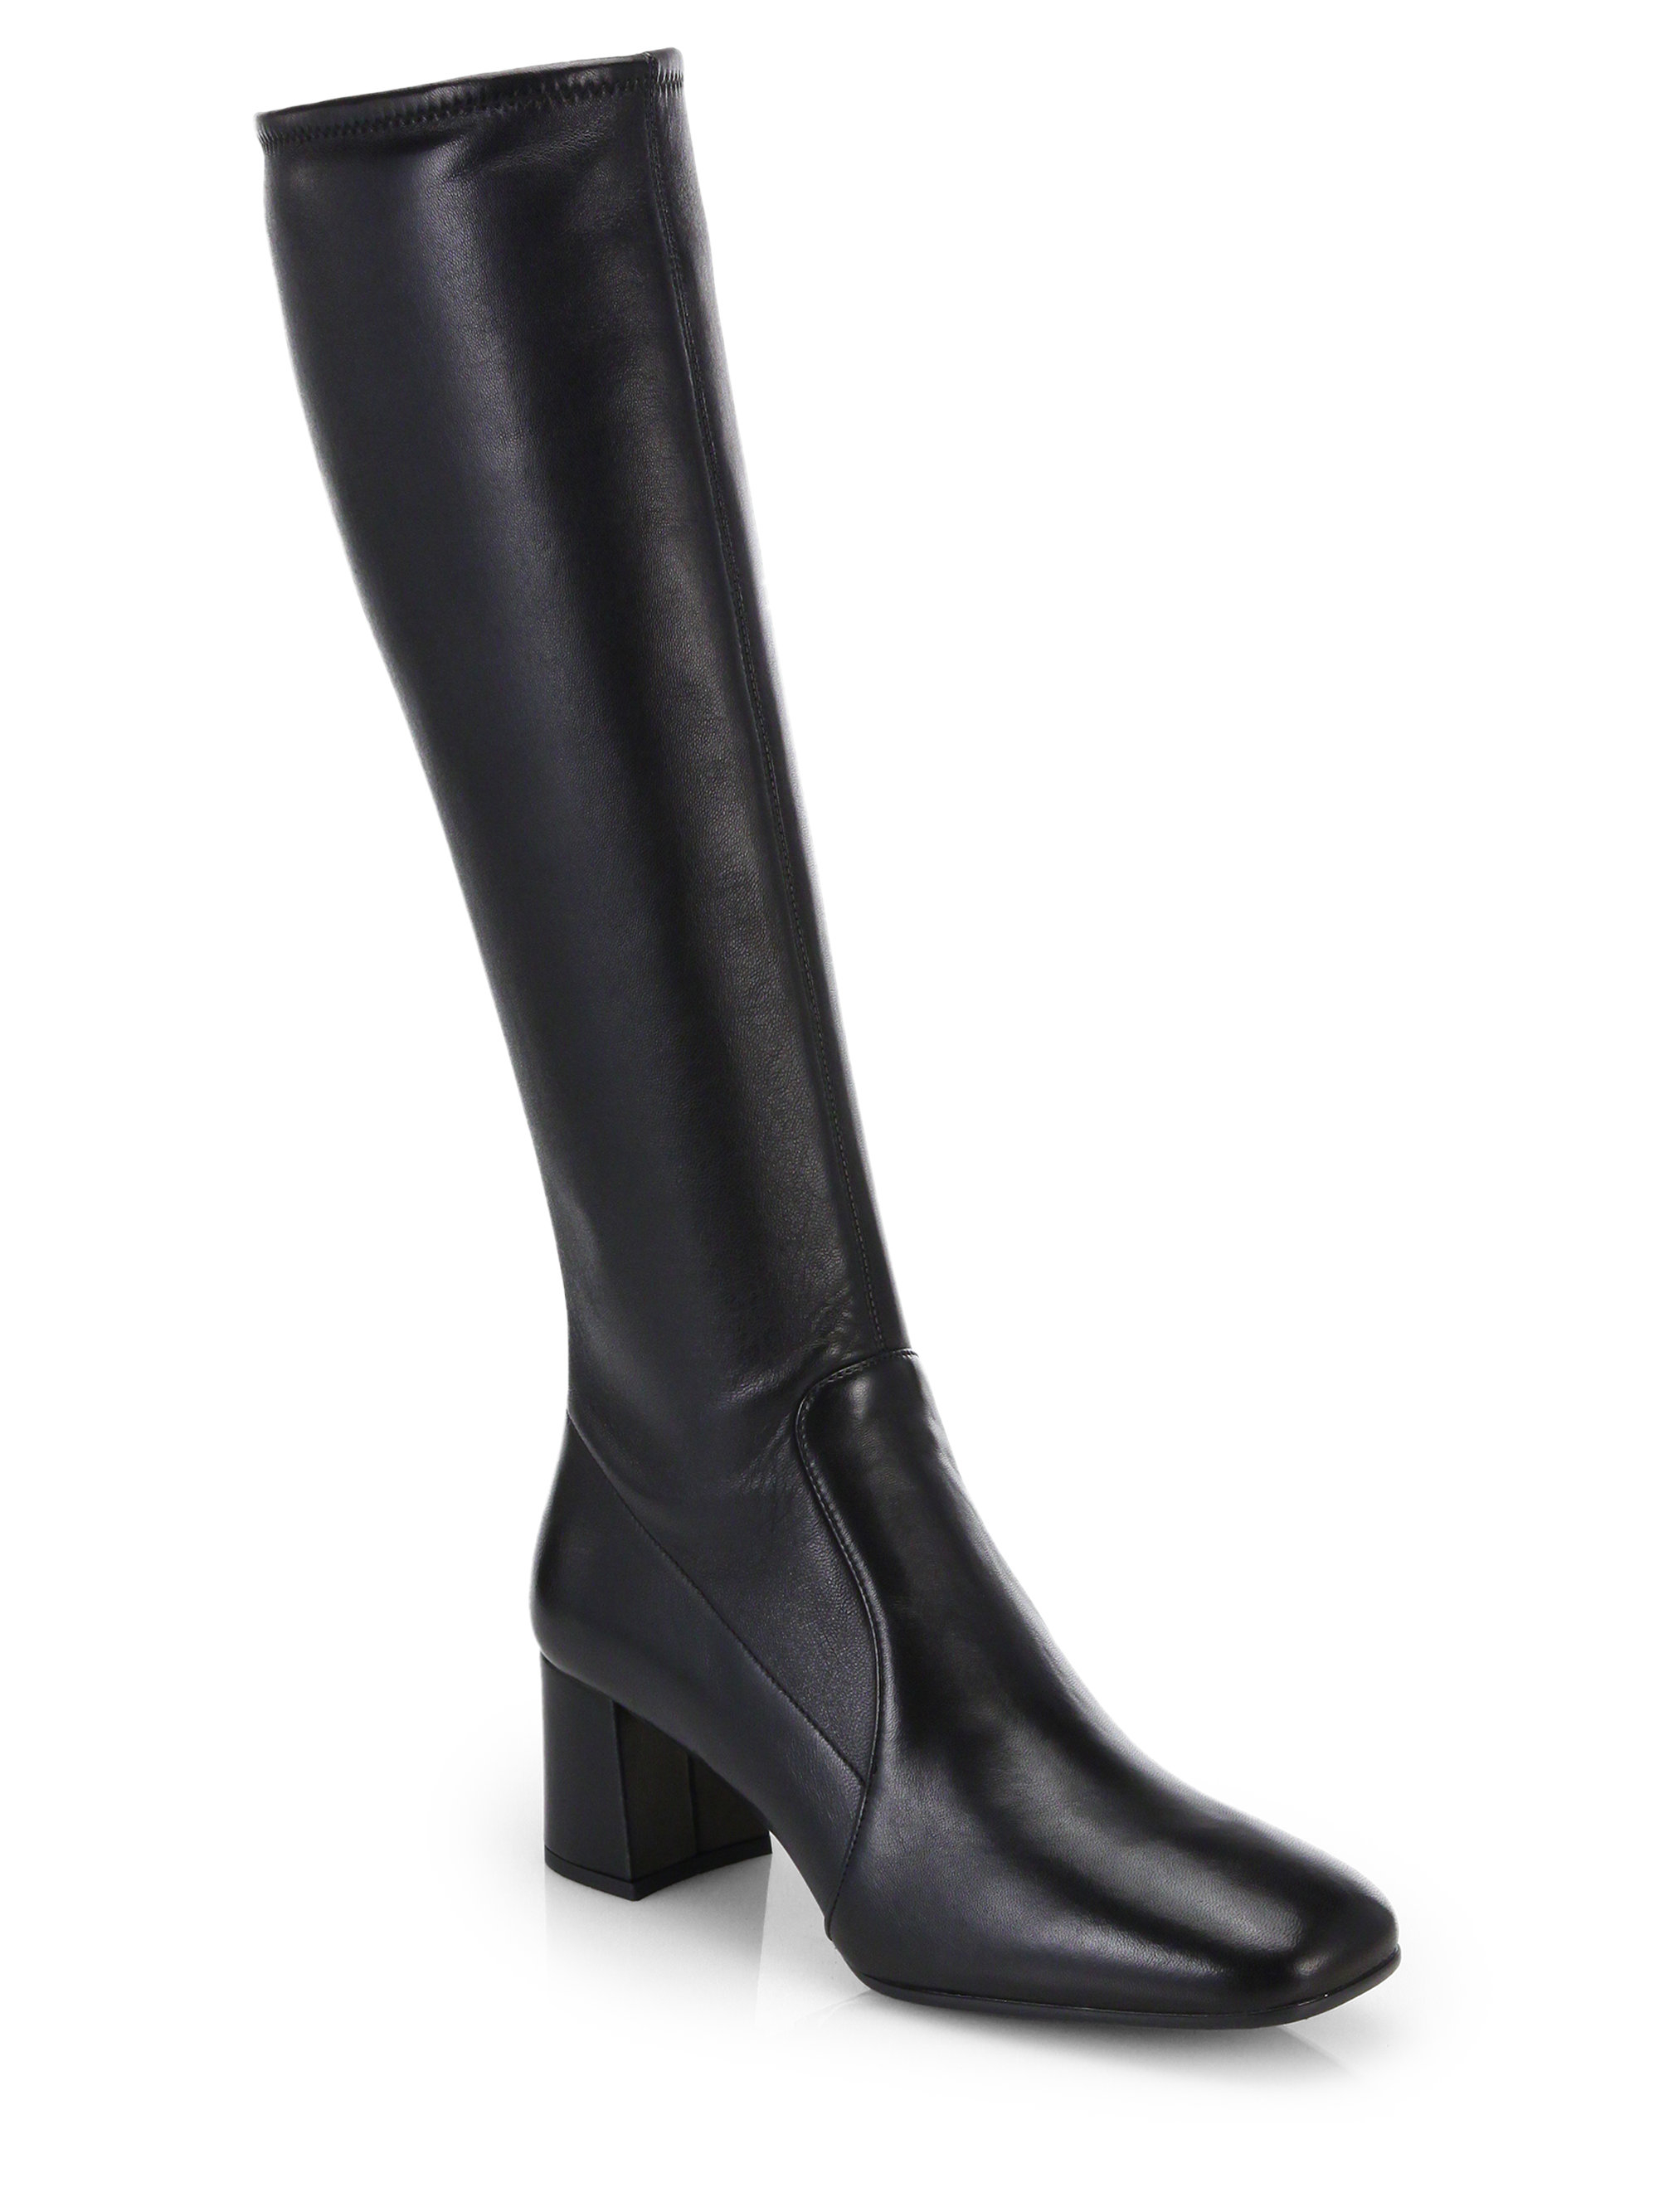 prada leather knee high boots in black lyst